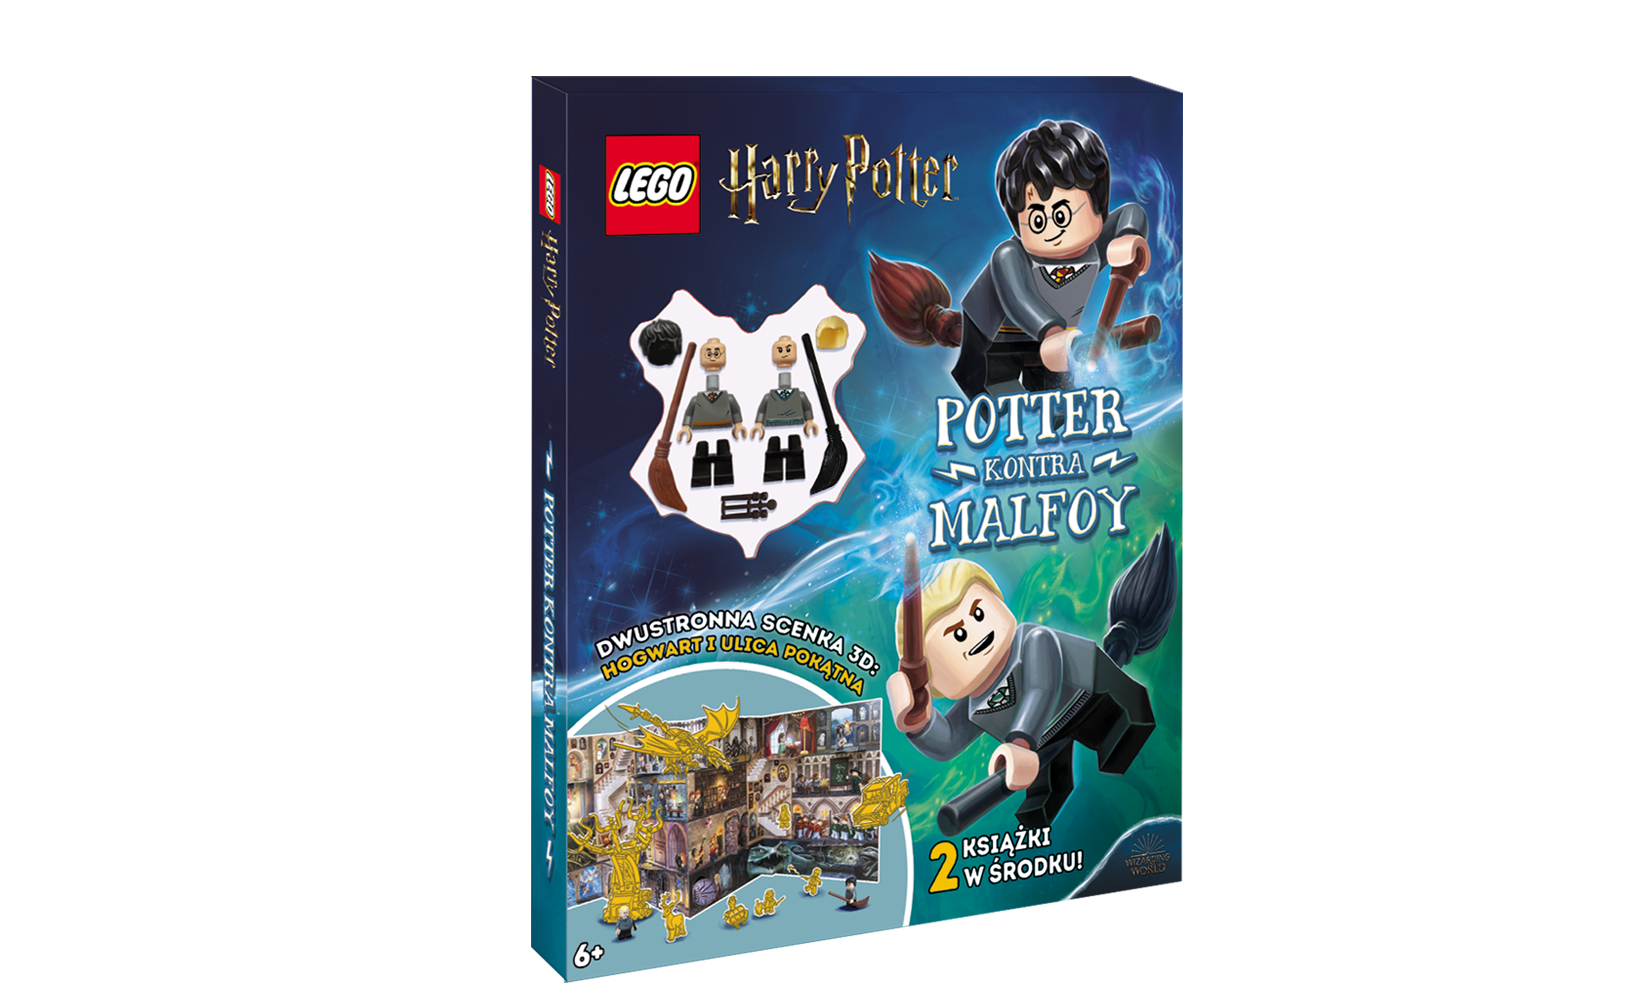 LEGO® Harry Potter™. Potter contra Malfoy